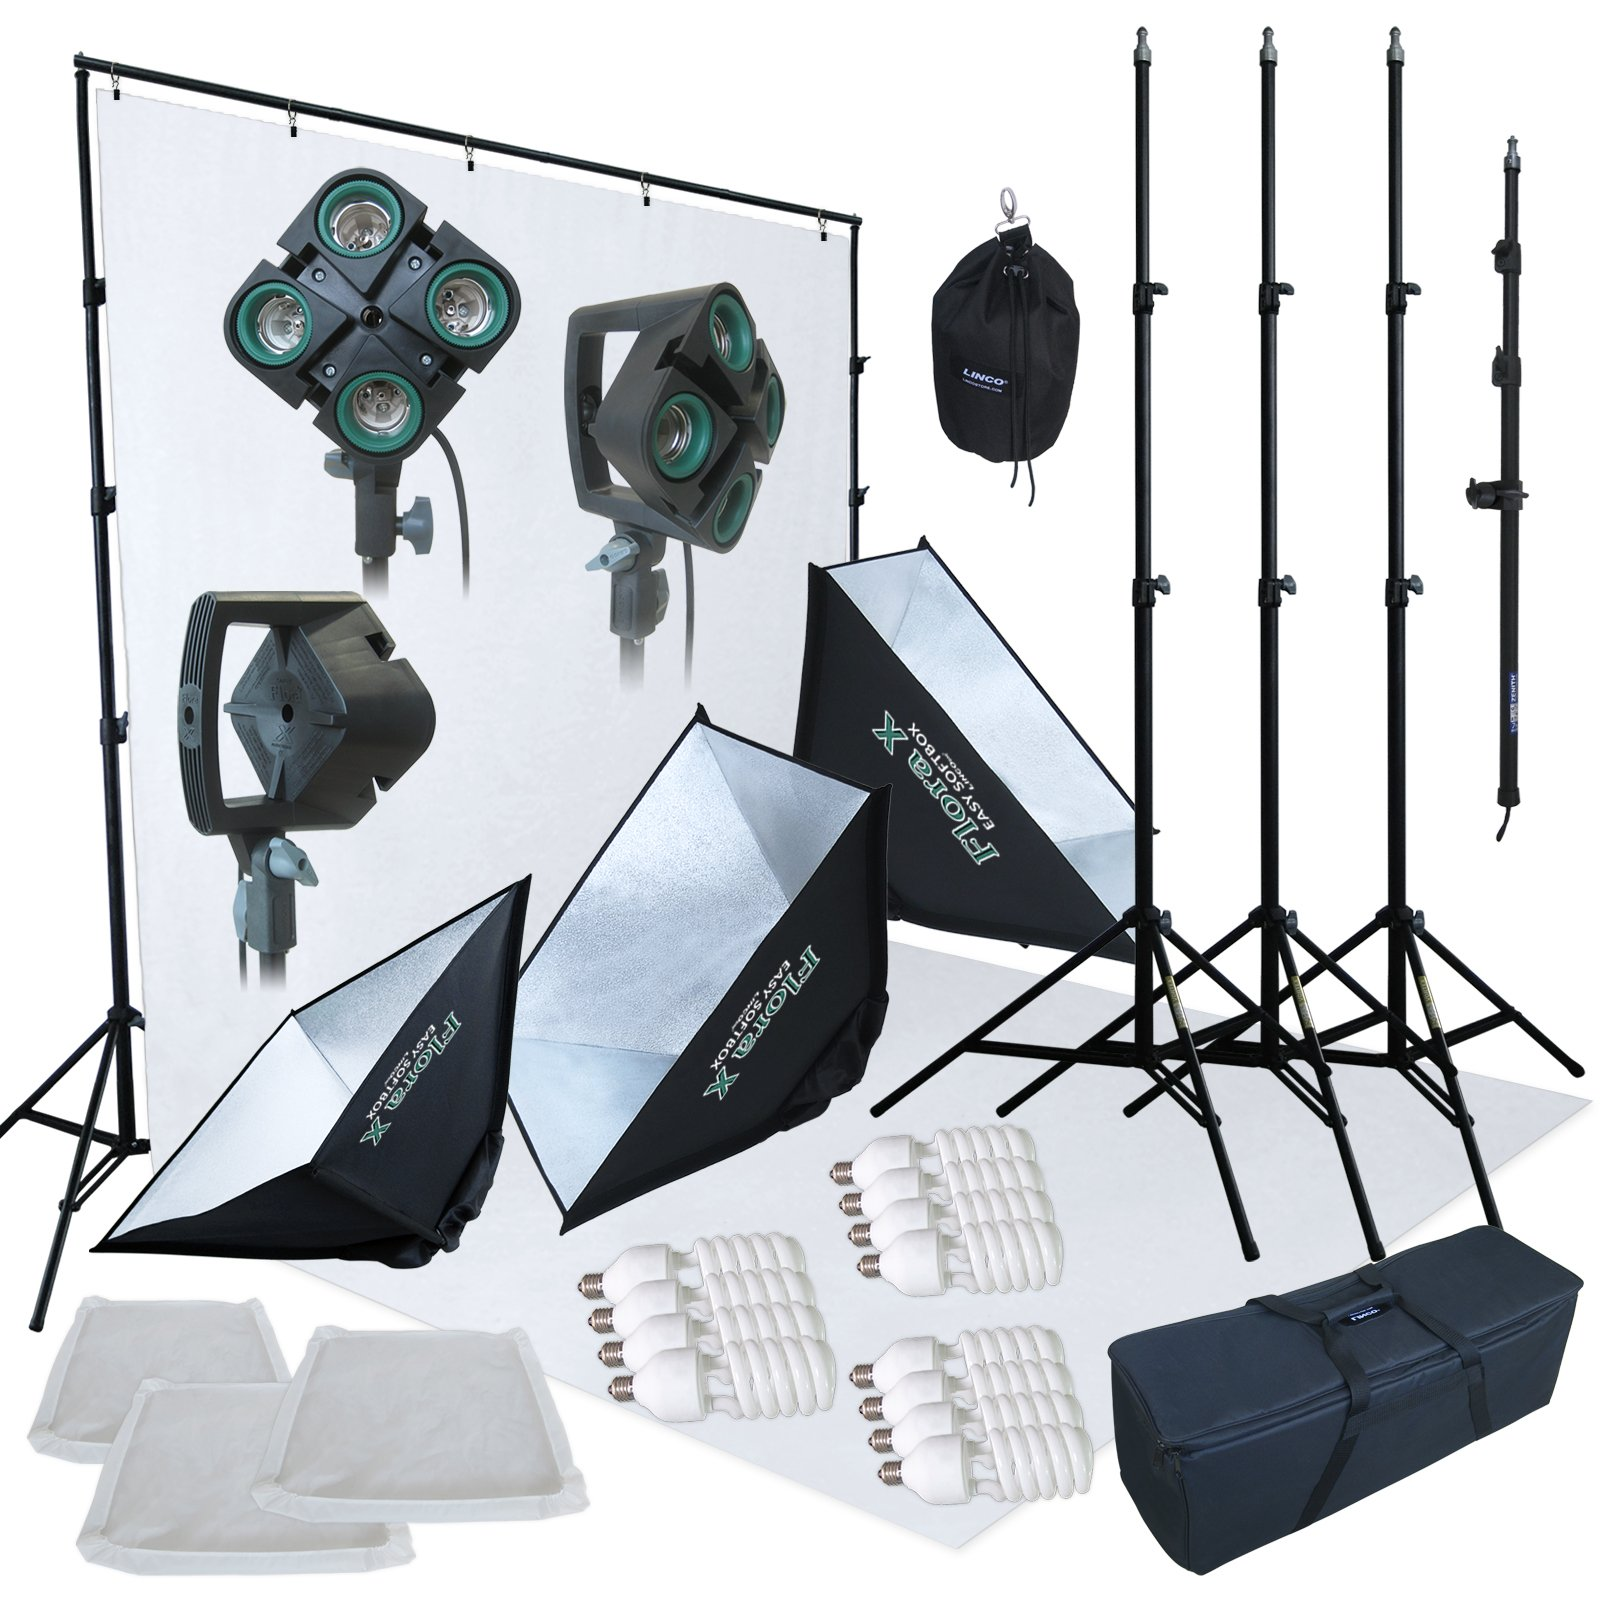 Linco Lincostore 2400 Watt Photo Studio Lighting 10x20ft White Backdrop Photography Background Stand Light Kit AM144-W by Linco (Image #2)